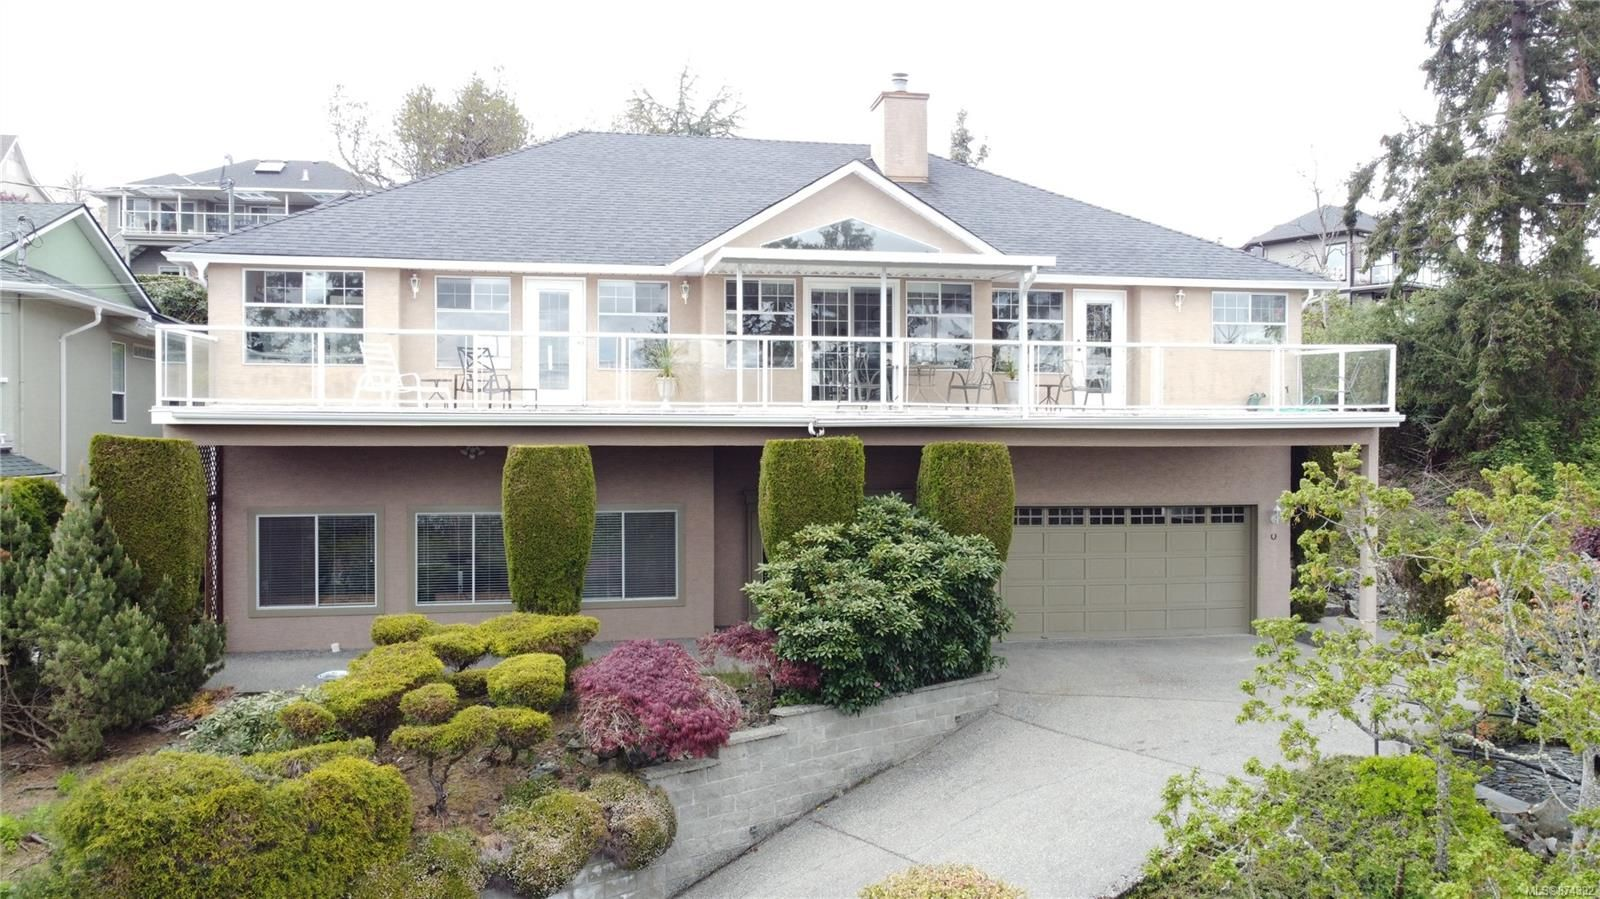 Main Photo: 3339 Stephenson Point Rd in : Na Departure Bay House for sale (Nanaimo)  : MLS®# 874392